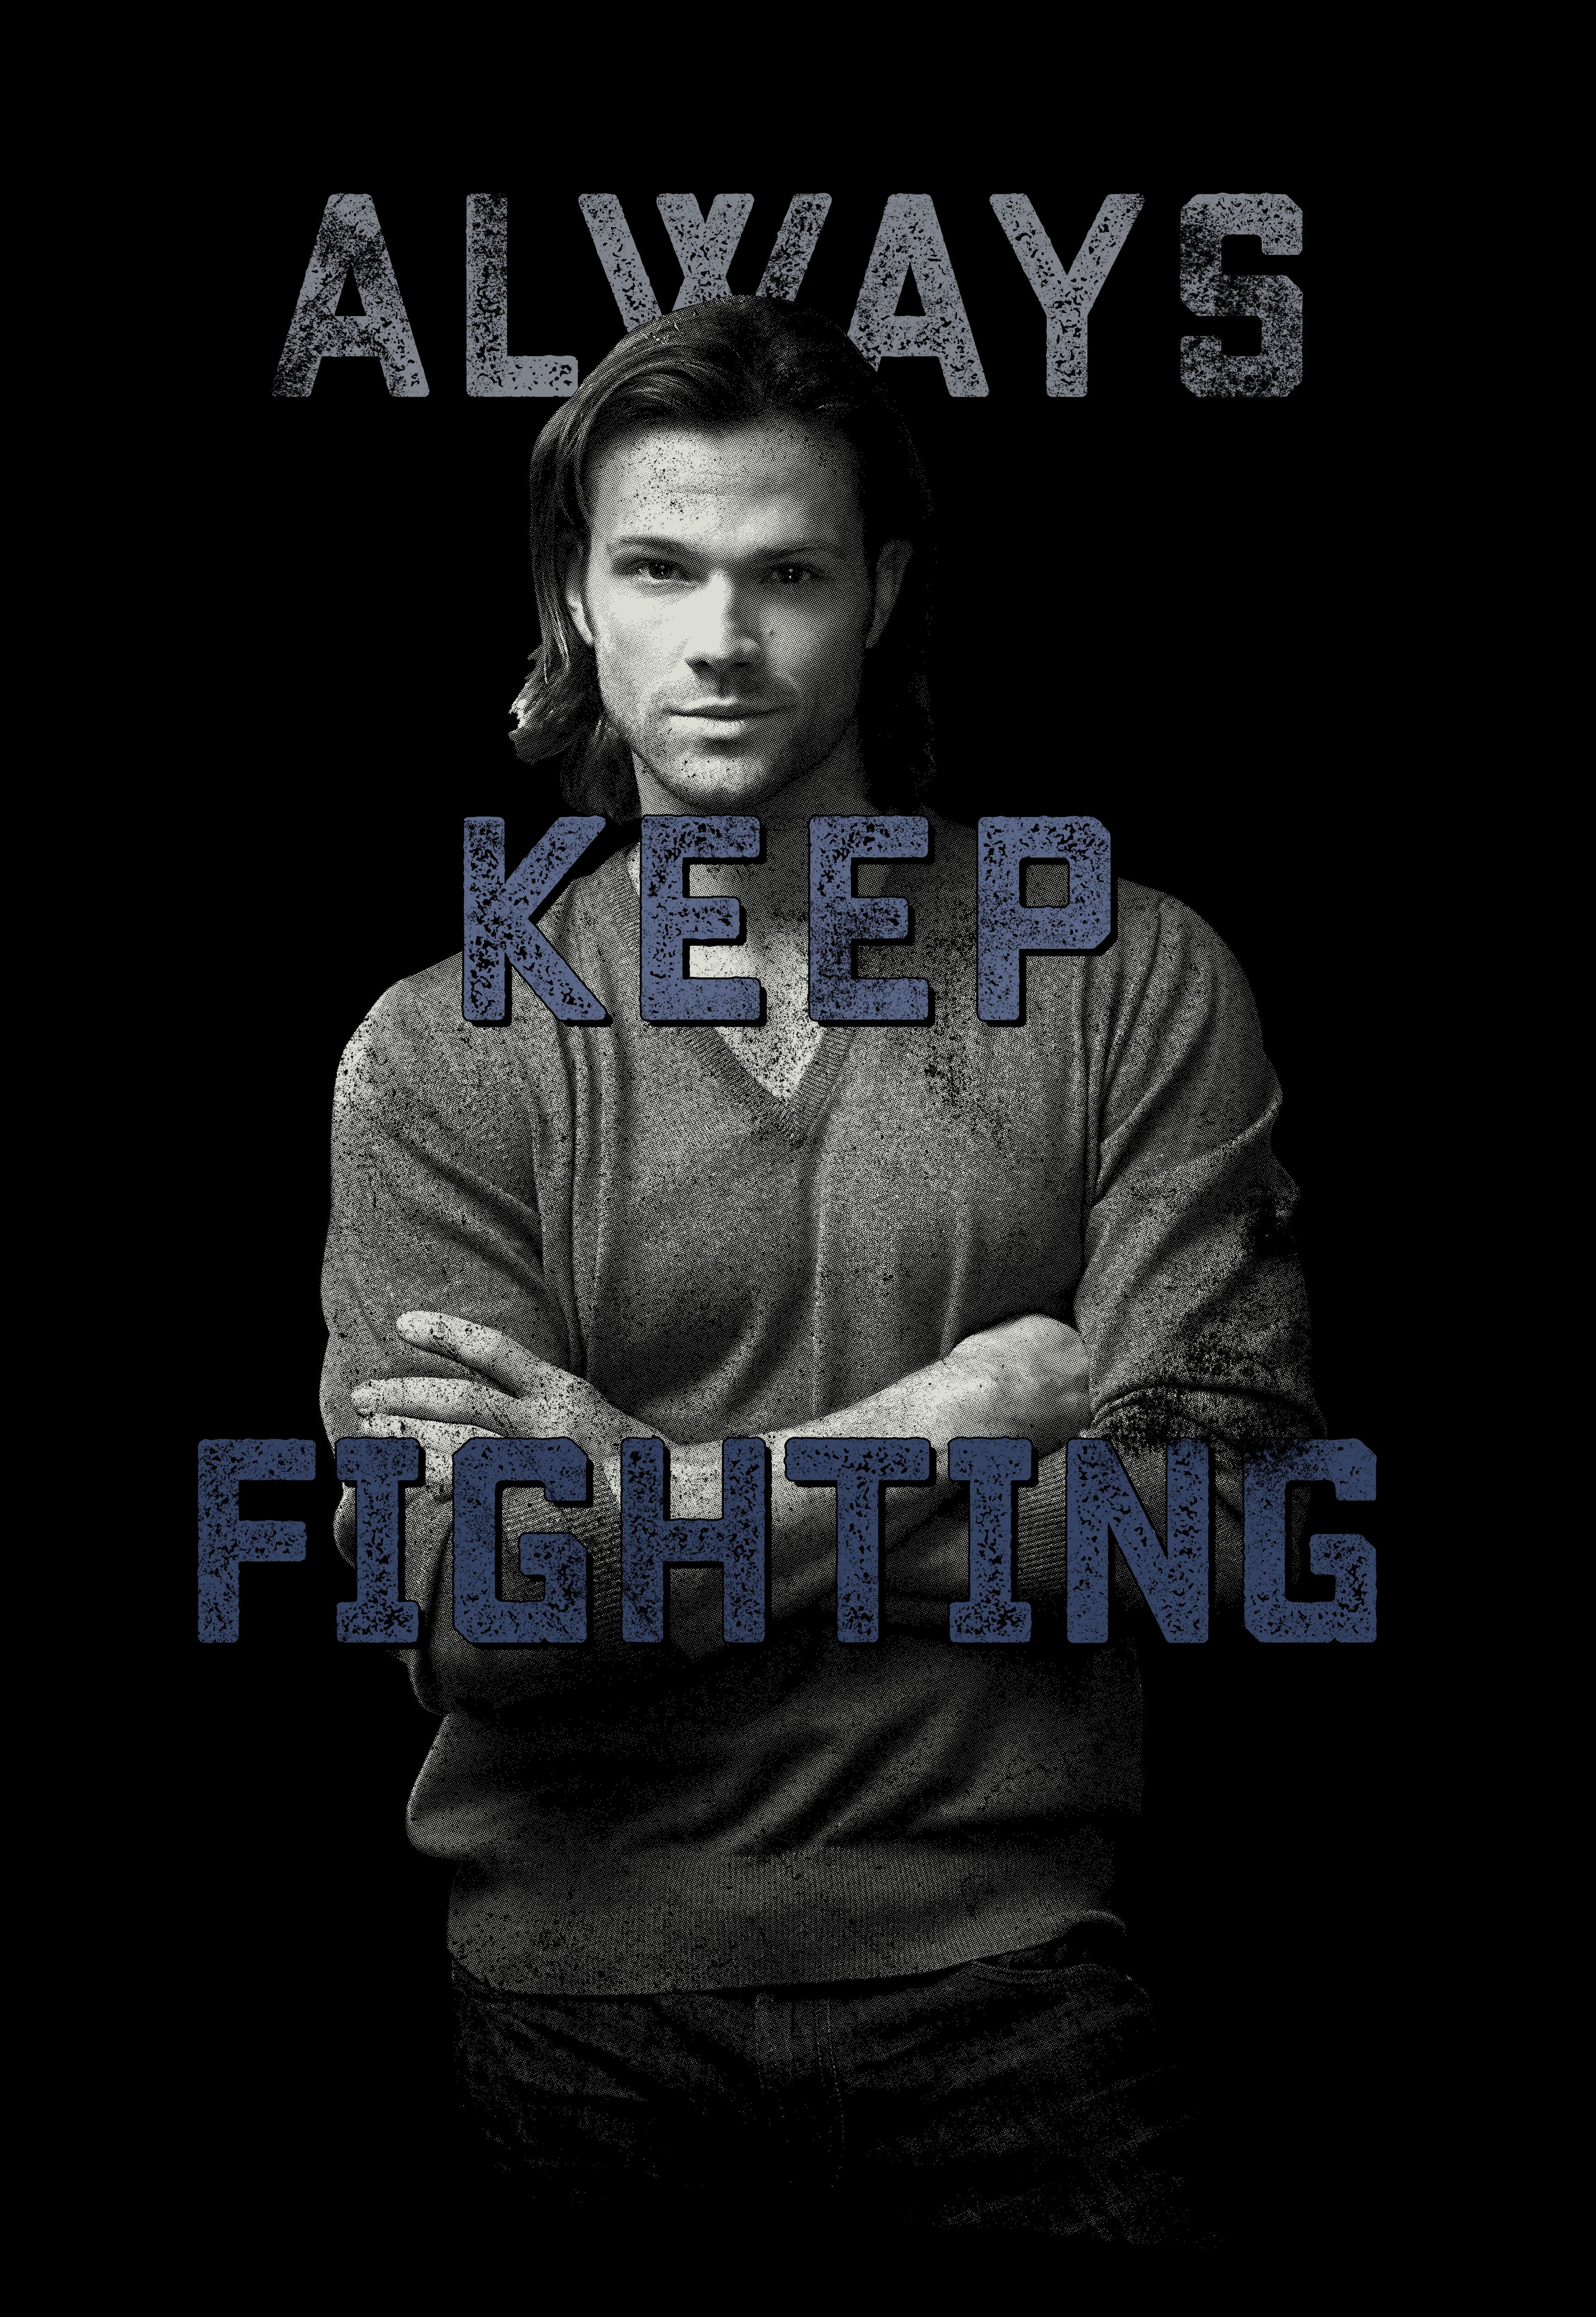 Jared padalecki quotes - Jared Padalecki Always Keep Fighting Limited Edition Merch Represent